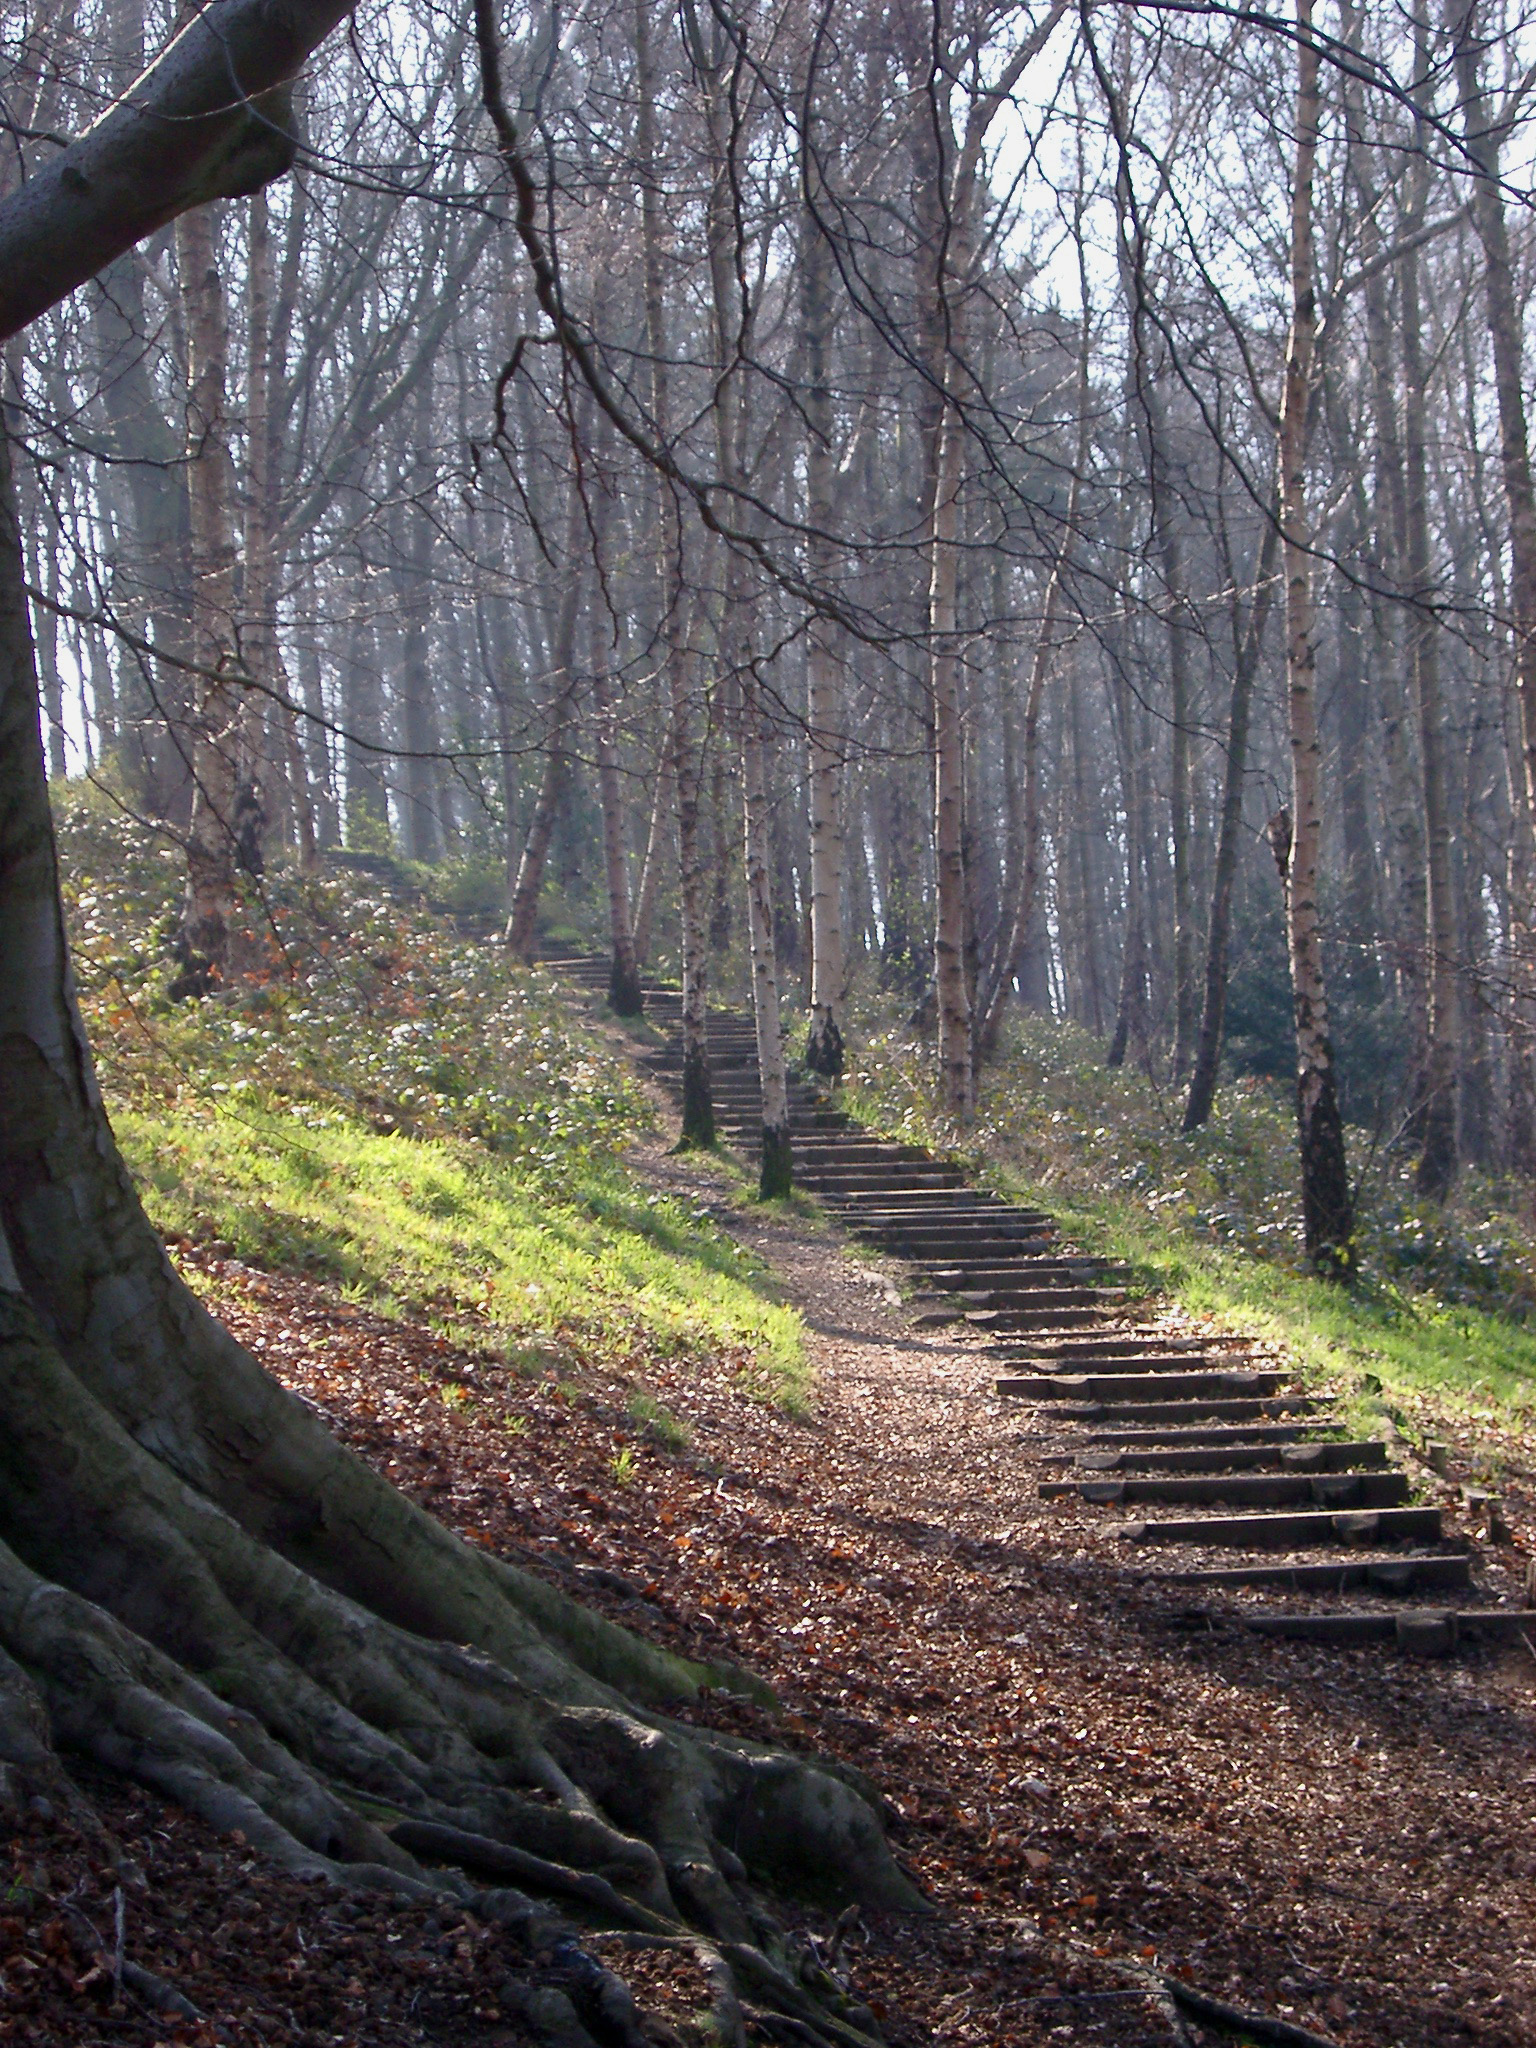 Rustic steps on a rural hiking trail or footpath meandering up hill through open woodland